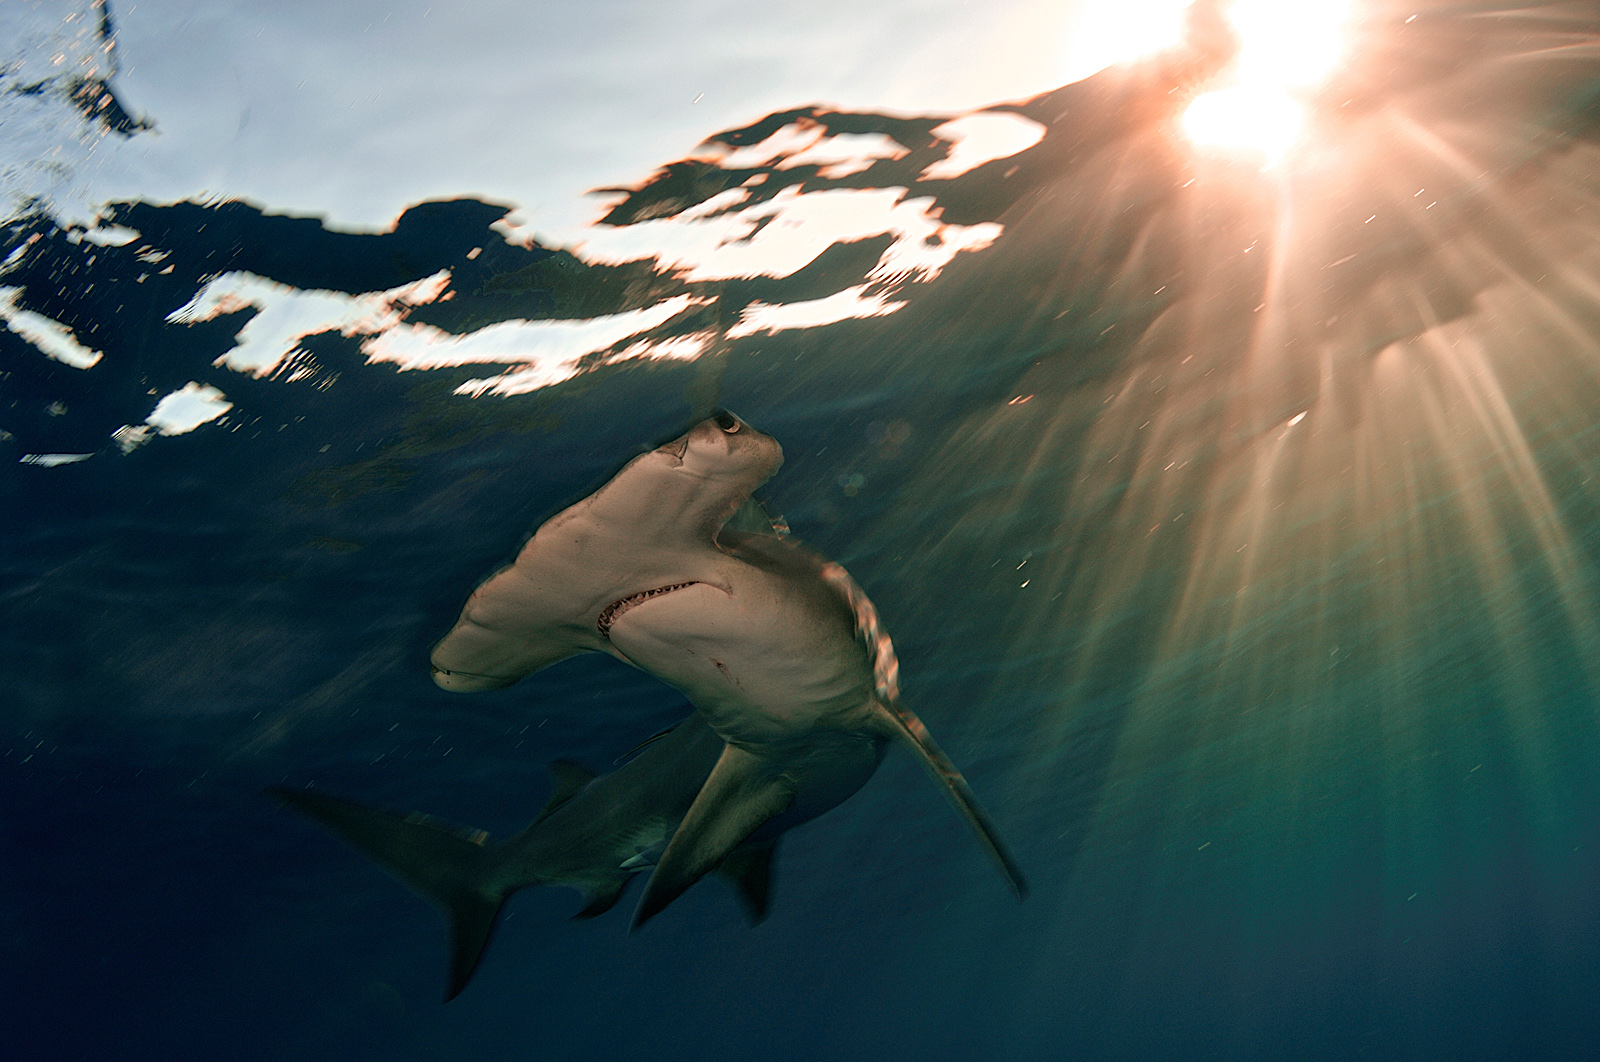 A male great hammerhead shark swims just below the surface of the water in the Bahamas at sunset.<div class='credit'><strong>Credit:</strong> A male great hammerhead shark swims just below the surface of the water in the Bahamas at sunset.</div>